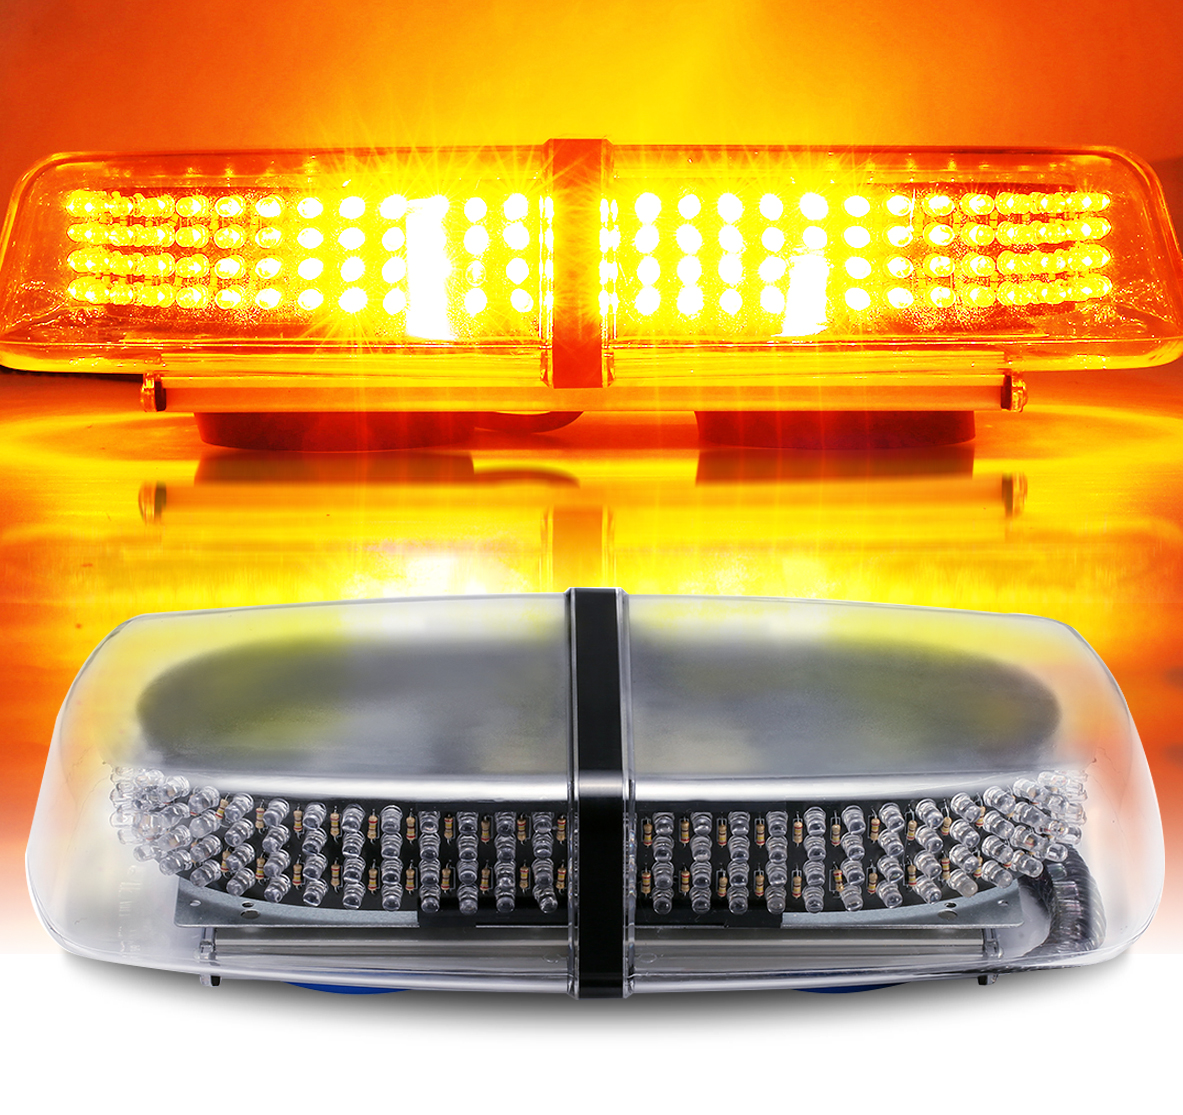 New AMBOTHER  Emergency Warning Strobe Light 240 LED 7-Flash Modes Breakdown Hazard Flash Beacon Lights Bar Caution Warning for Car Vehicle Van Truck SUV